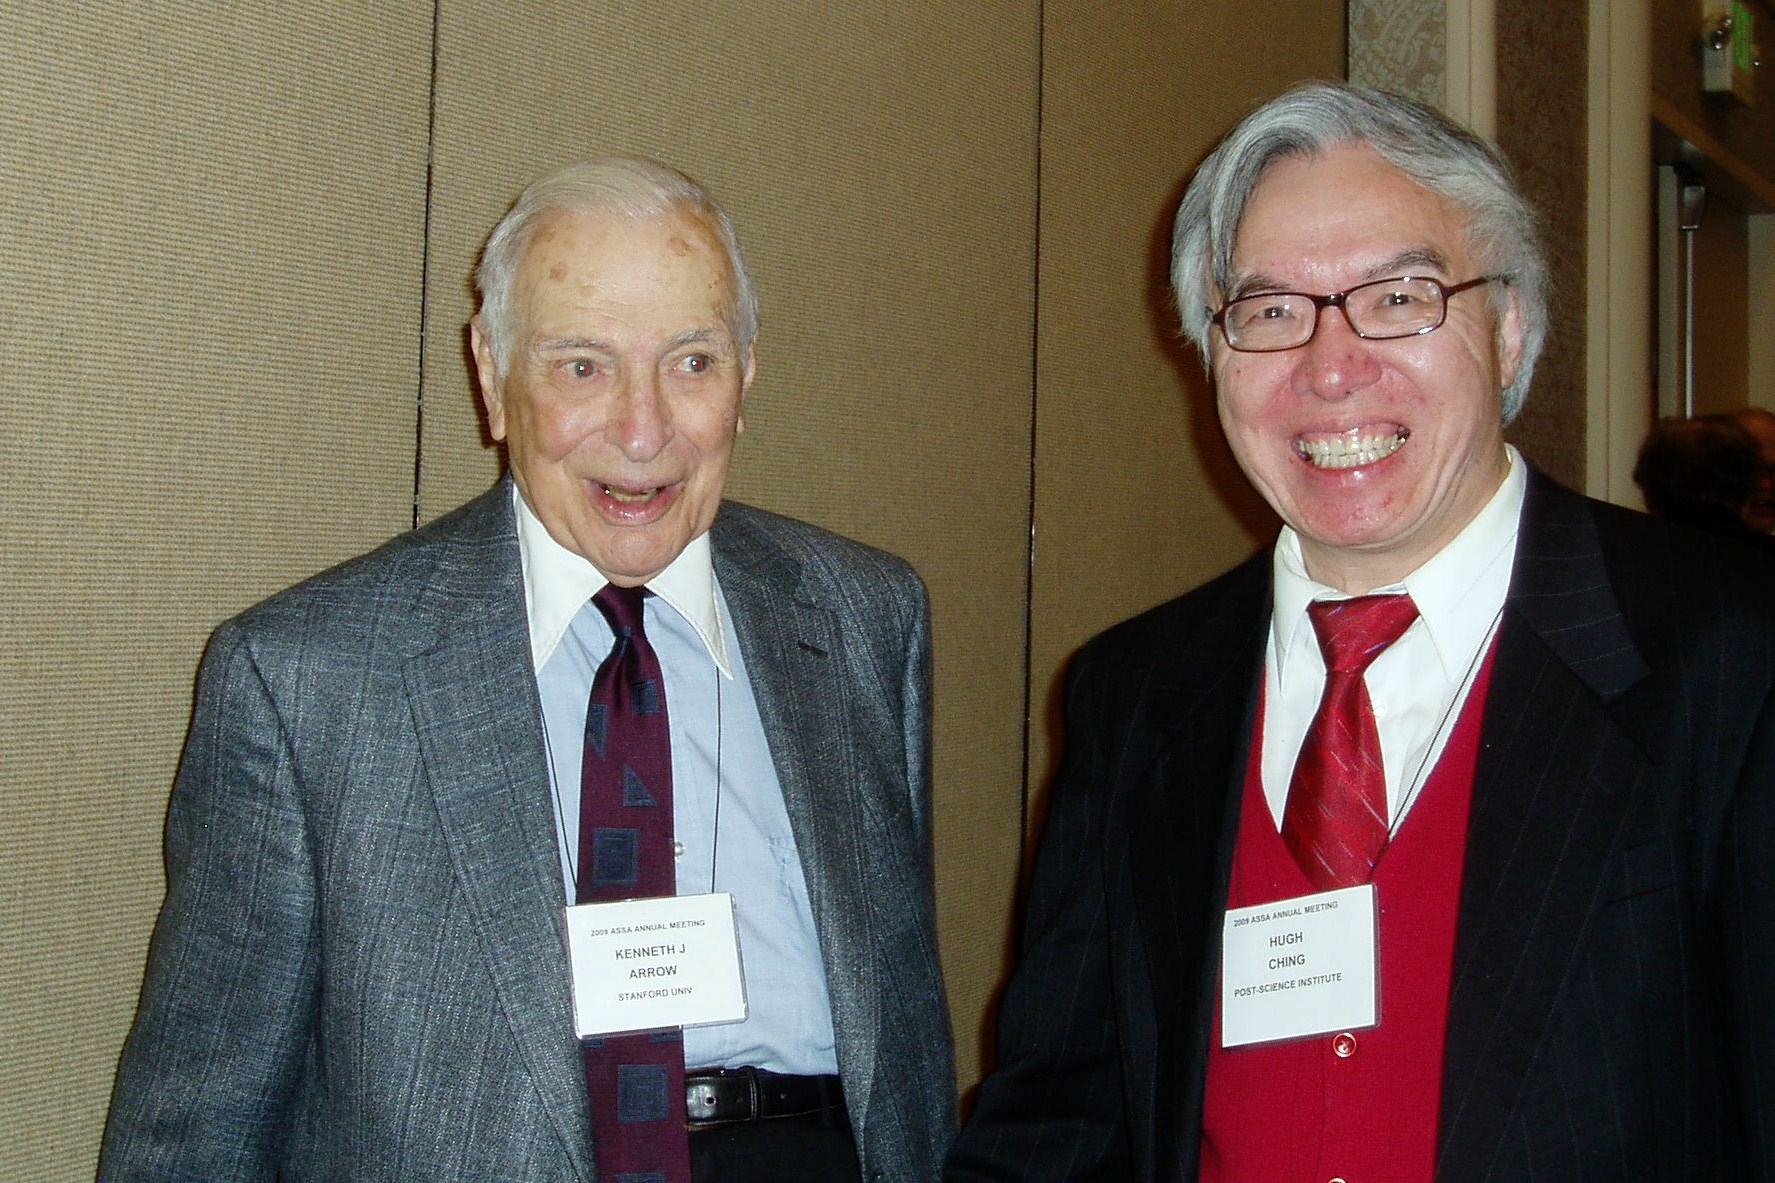 Kenneth Arrow and Hugh Ching. Click to learn more about friends of Post-Science Institute.